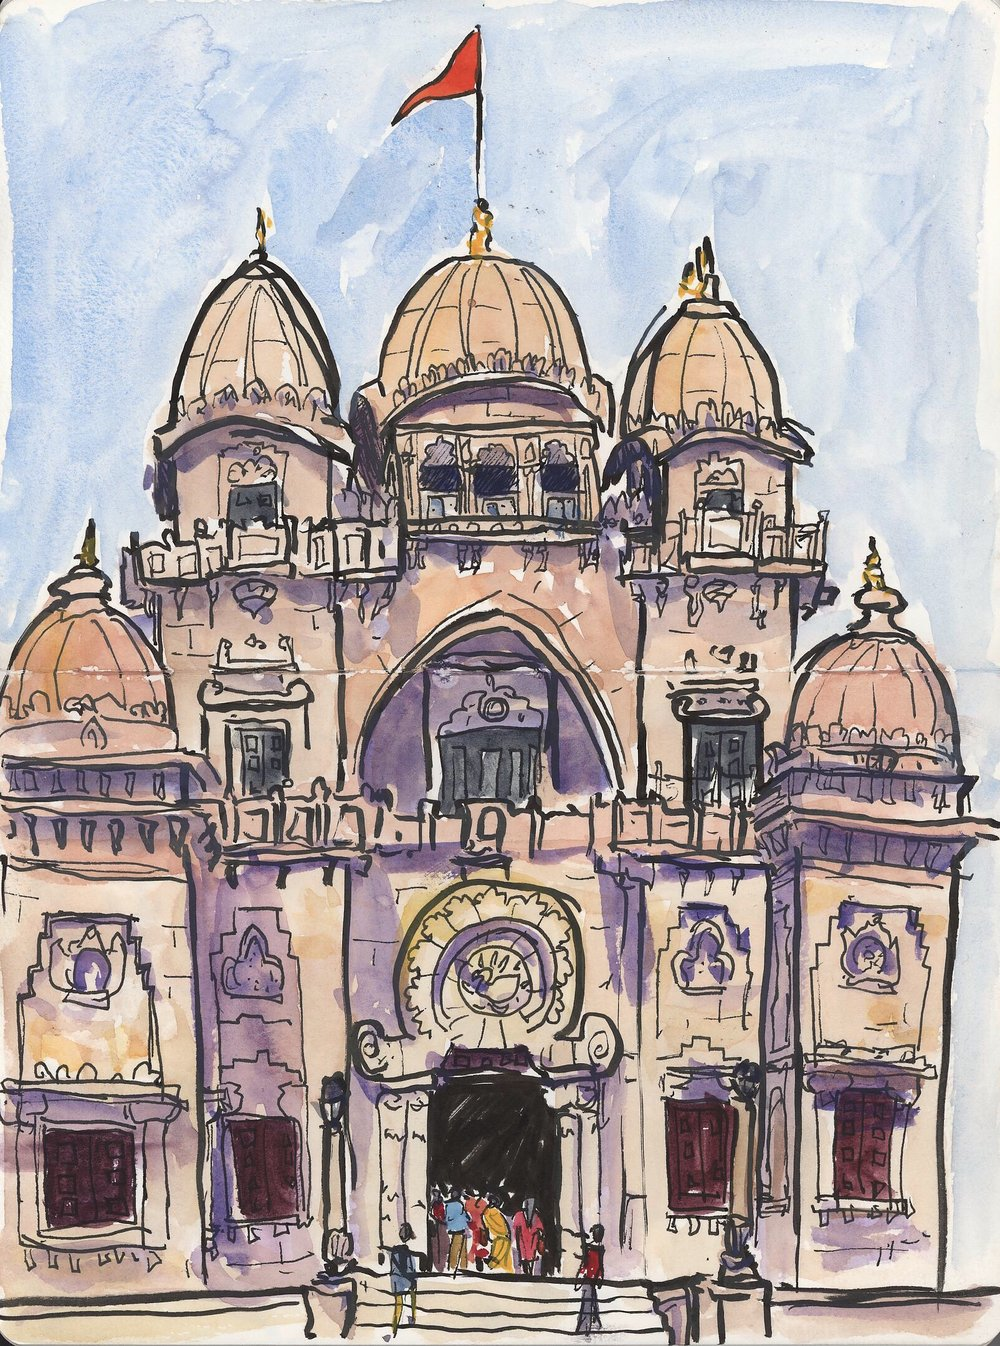 This is the main temple at the Belur Math complex in Kolkata. This is probably my favorite sketch from the entire trip. We found a place in the shade and I spent a little over an hour doggedly working on this sketch, trying to finish before they kicked us out (they close midday and then open again in the late afternoon). As was usual, we attracted a lot of attention and people drifted over to either ask us for a selfie (For real, so many requests while we were there. We had to have a strict no selfie policy or else that is all we would have been doing!) or to see what I was up to. We had some nice conversations with some other families enjoying the shade as well.